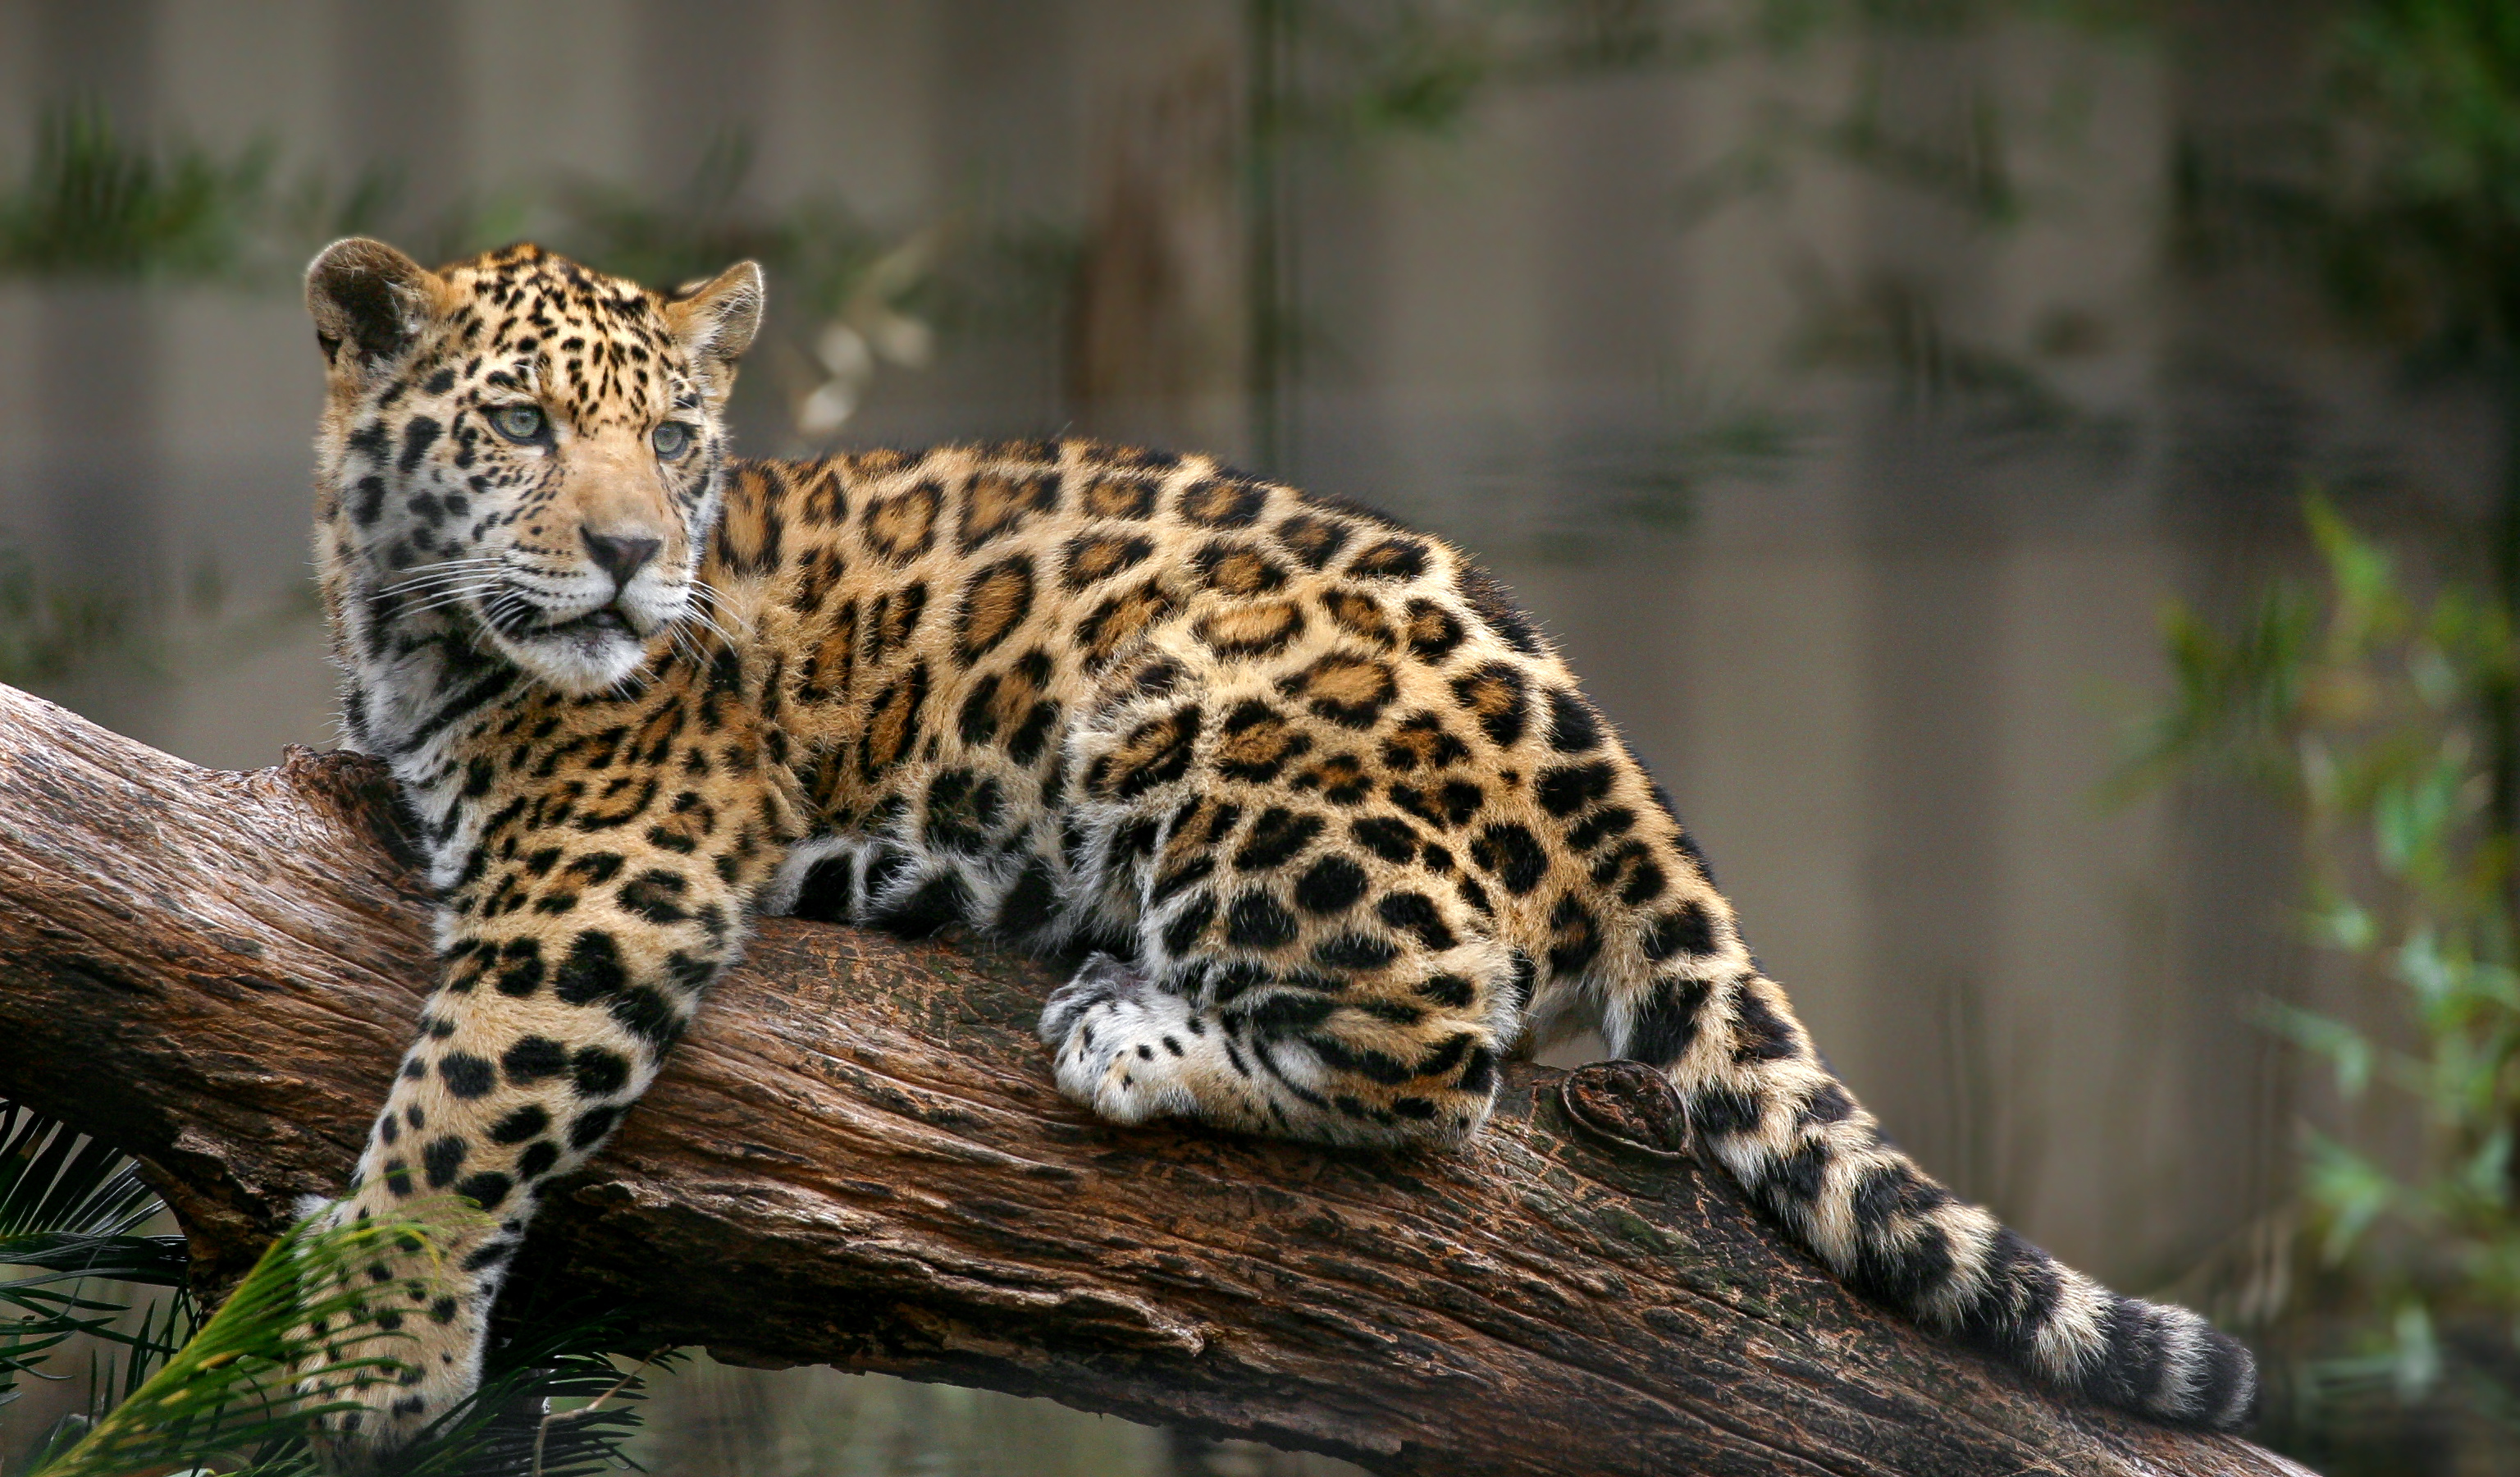 Summer Program - Community Resources | ARCC Programs | Costa Rica: Jaguar Conservation Adventure